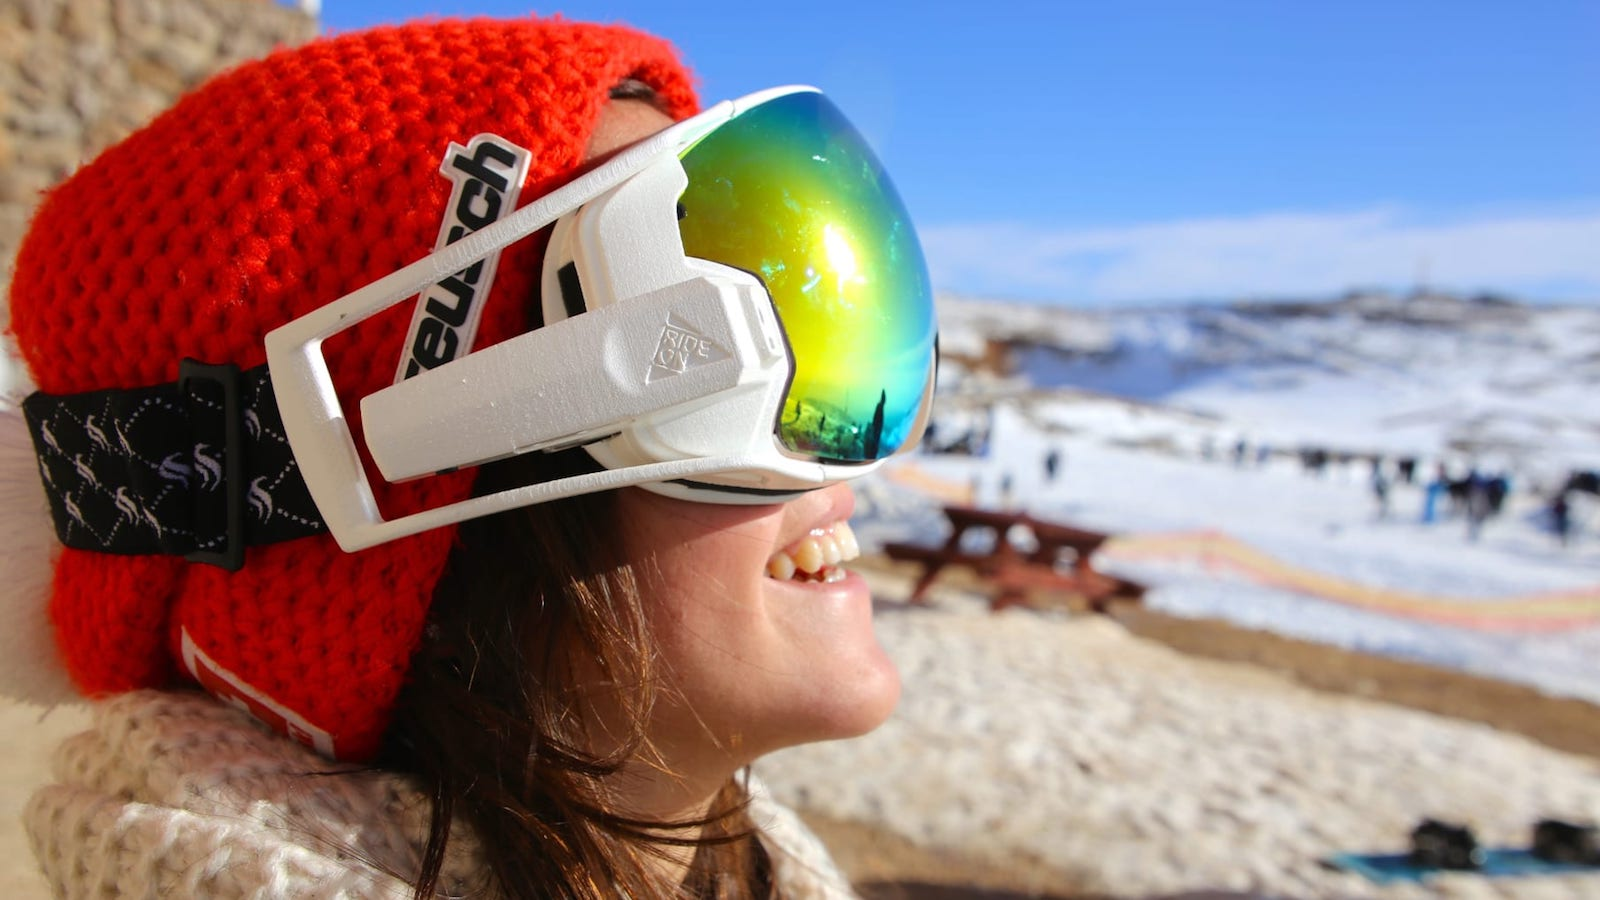 RideOn AR Snow Goggles feature an HD camera for photos and video recording